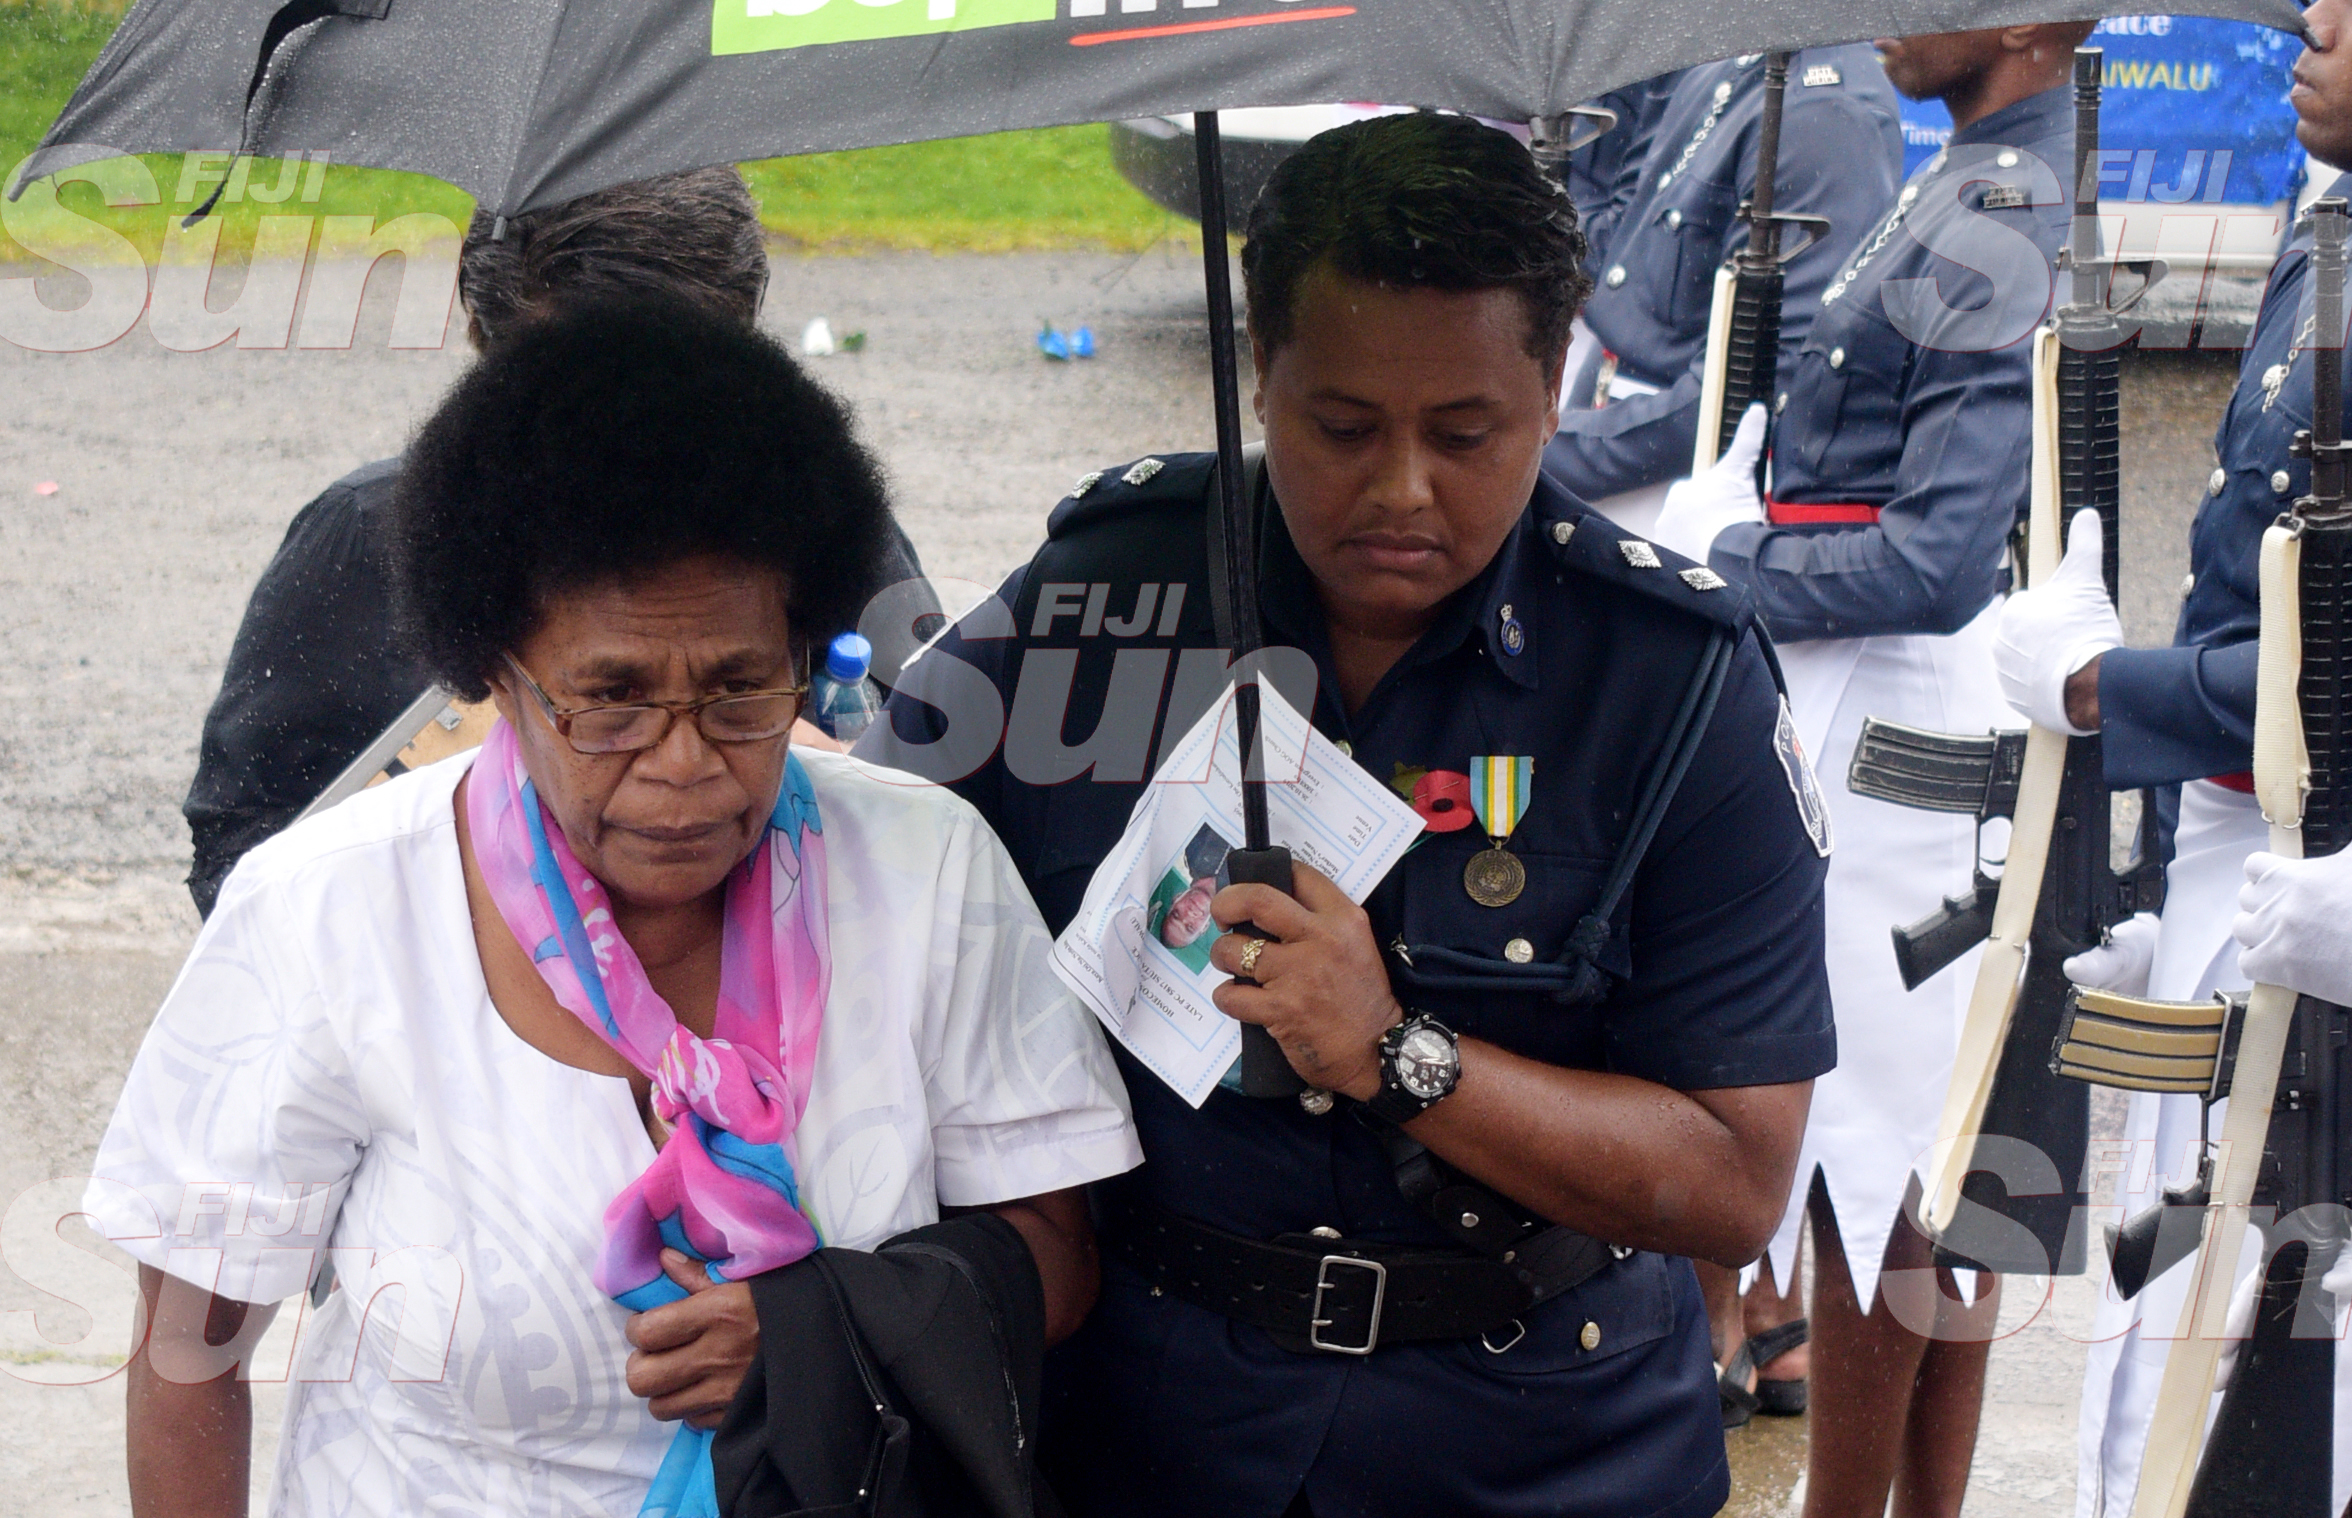 Late Constable Siuta Niumataiwalu's Mother, Makereta Koroi 66 (left) is consoled by Inspector Mariana Bulatolu during the funeral service at Evergreen AOG Church in Nasinu on October 26, 2019. Photo: Ronald Kumar.